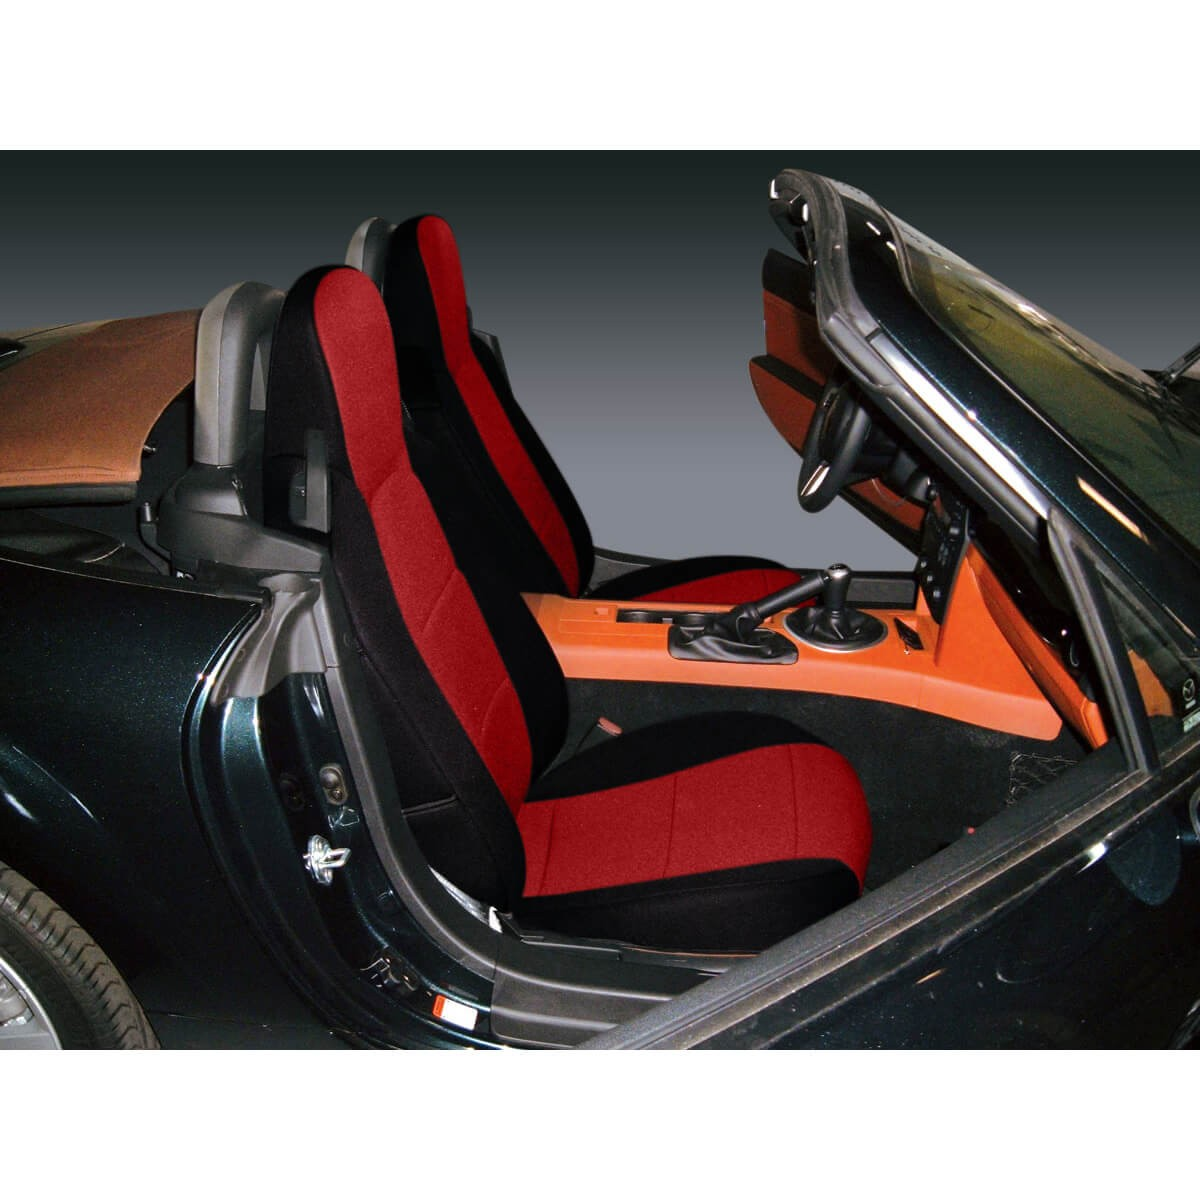 Neoprene Seat Covers By Coverking, 90-97